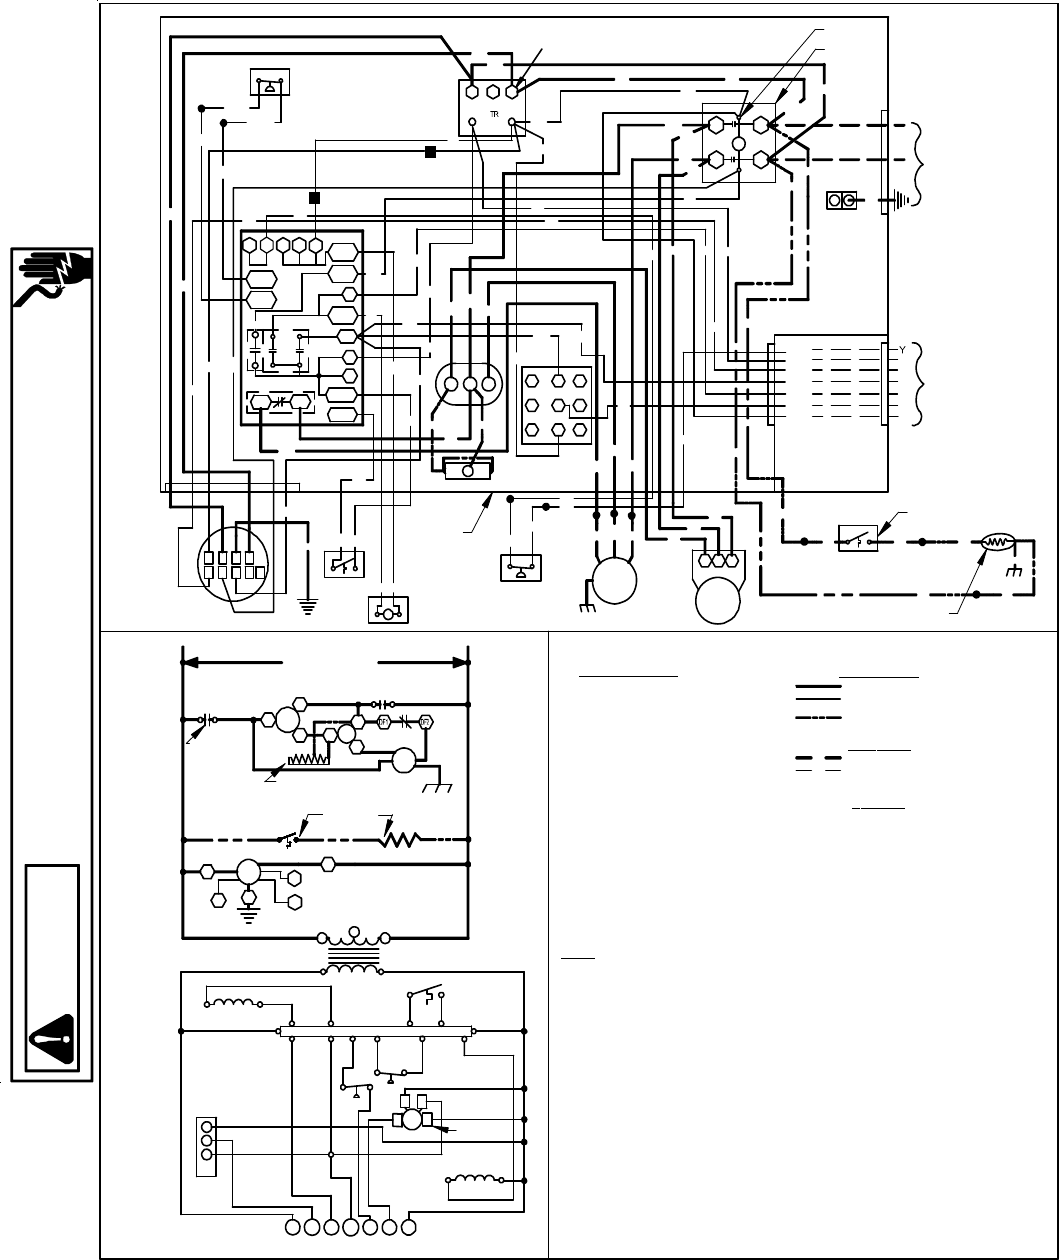 Hunter 44760 Wiring Diagram from manualsdump.com